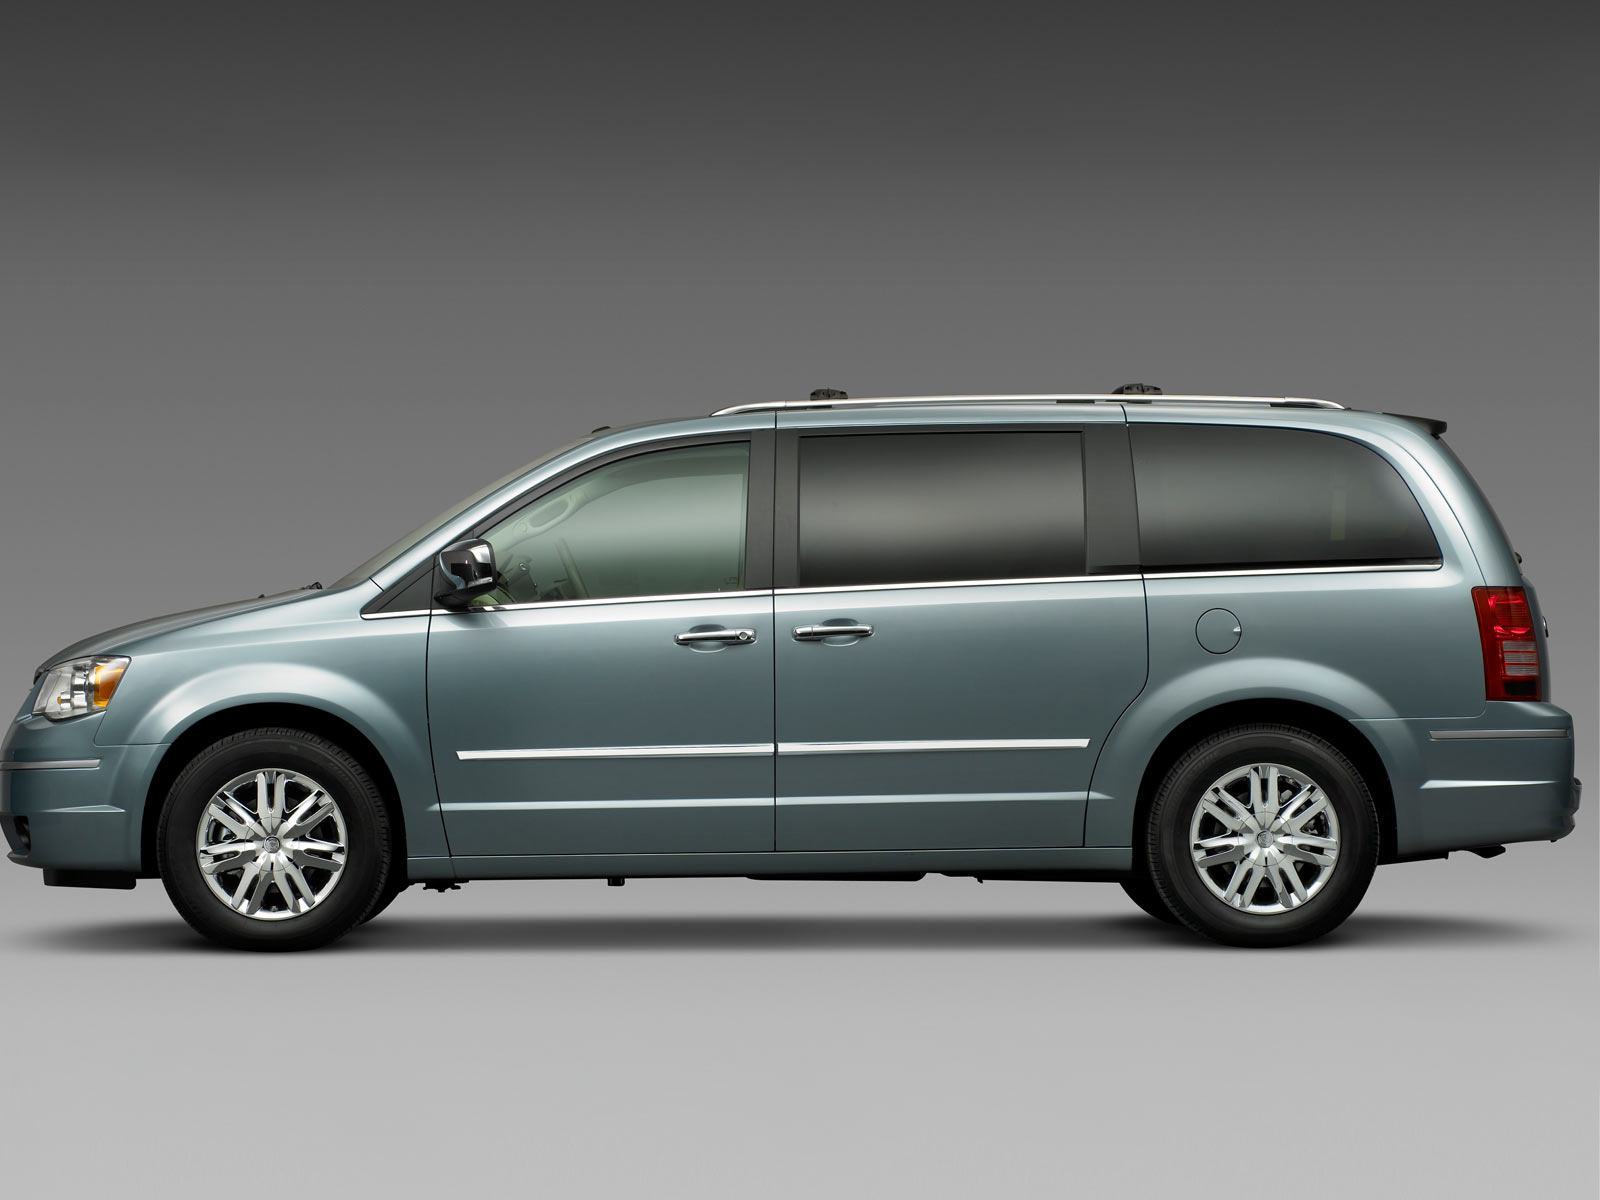 chrysler voyager pictures #10